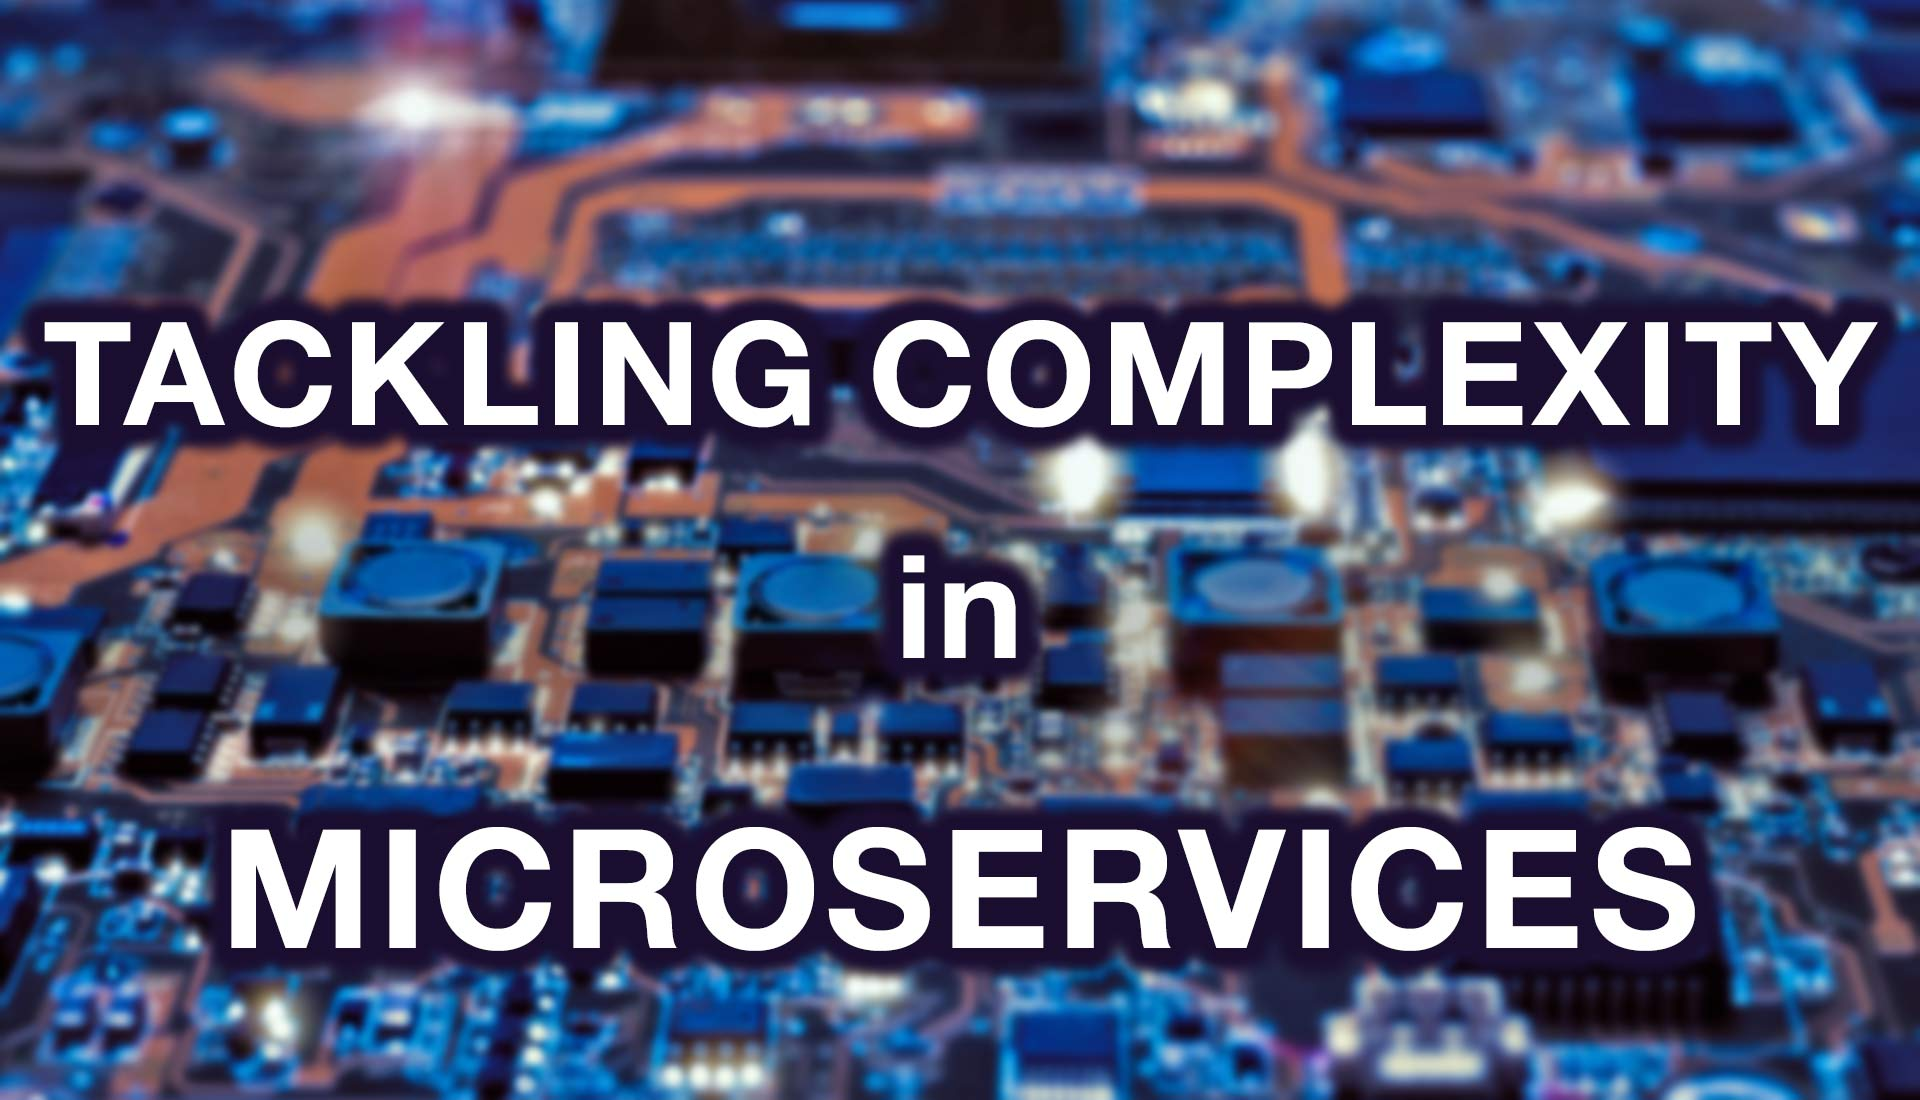 Tackling Complexity in Microservices